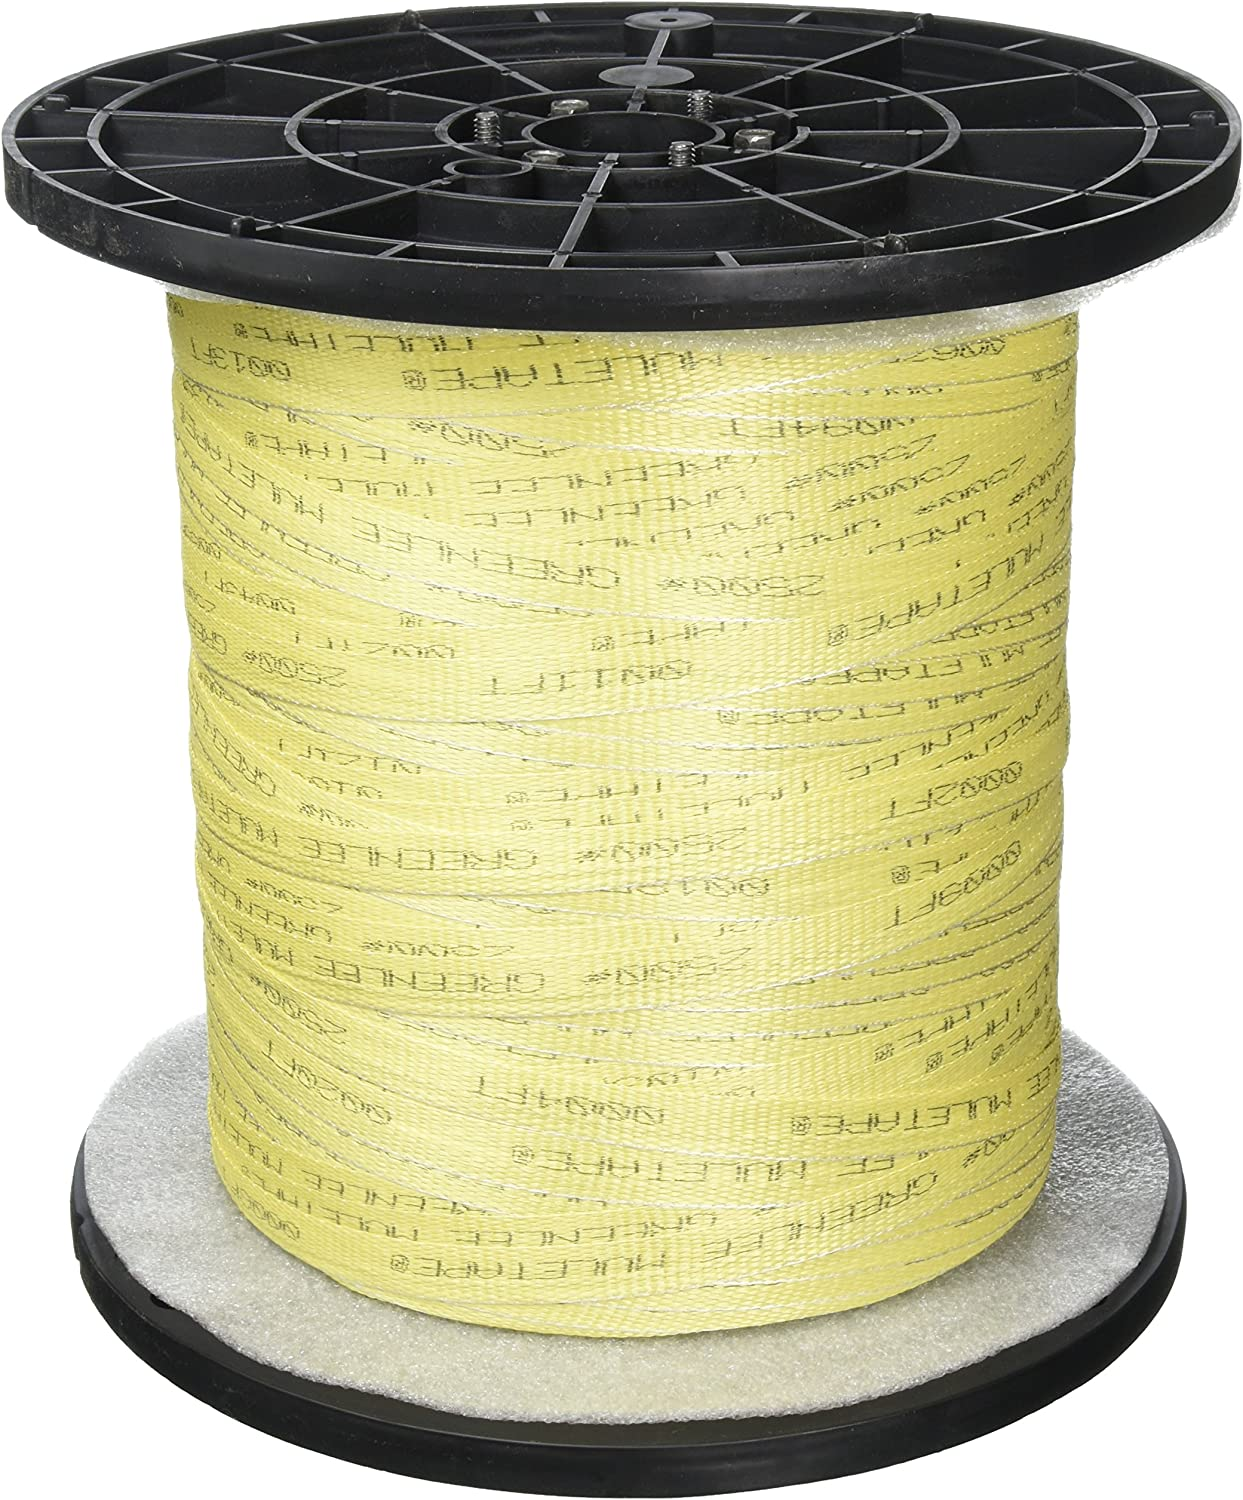 Greenlee 39245G TAPE MEASURE-2500# Max 55% OFF POLYARAMID X Store 3000- 1 2-Inch